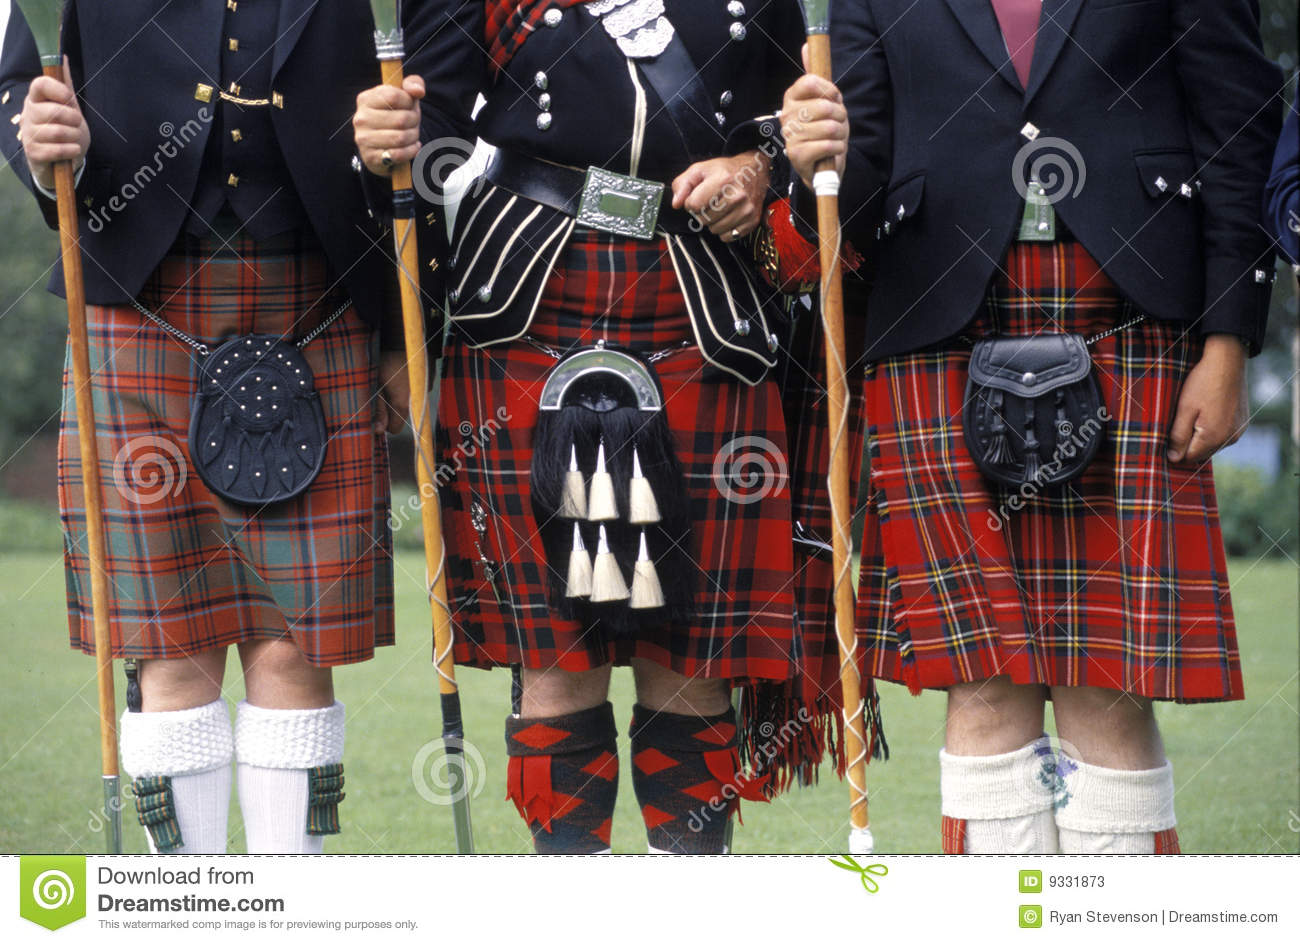 catholic single men in scotland A blog for catholic men that seeks to encourage virtue, the pursuit of holiness and the art of true masculinity a blog for catholic men that seeks to encourage virtue, the pursuit of holiness and the art of true masculinity.